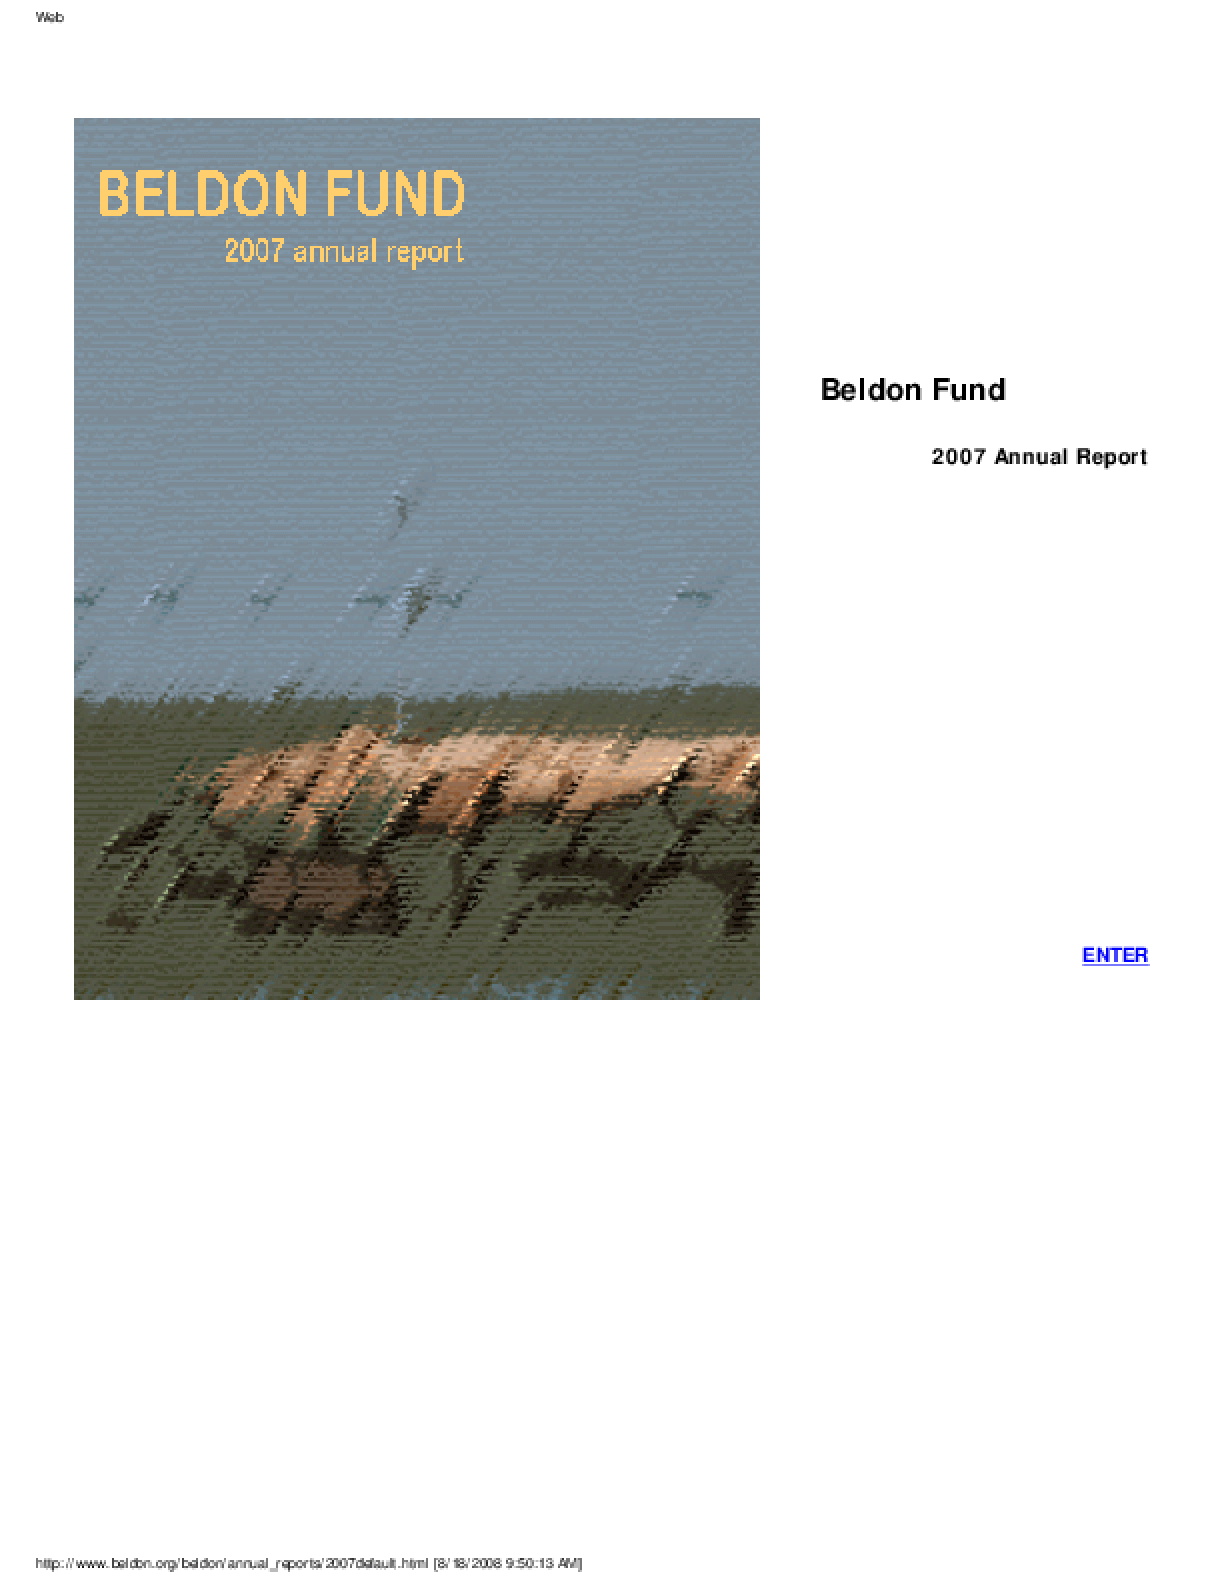 Beldon Fund - 2007 Annual Report